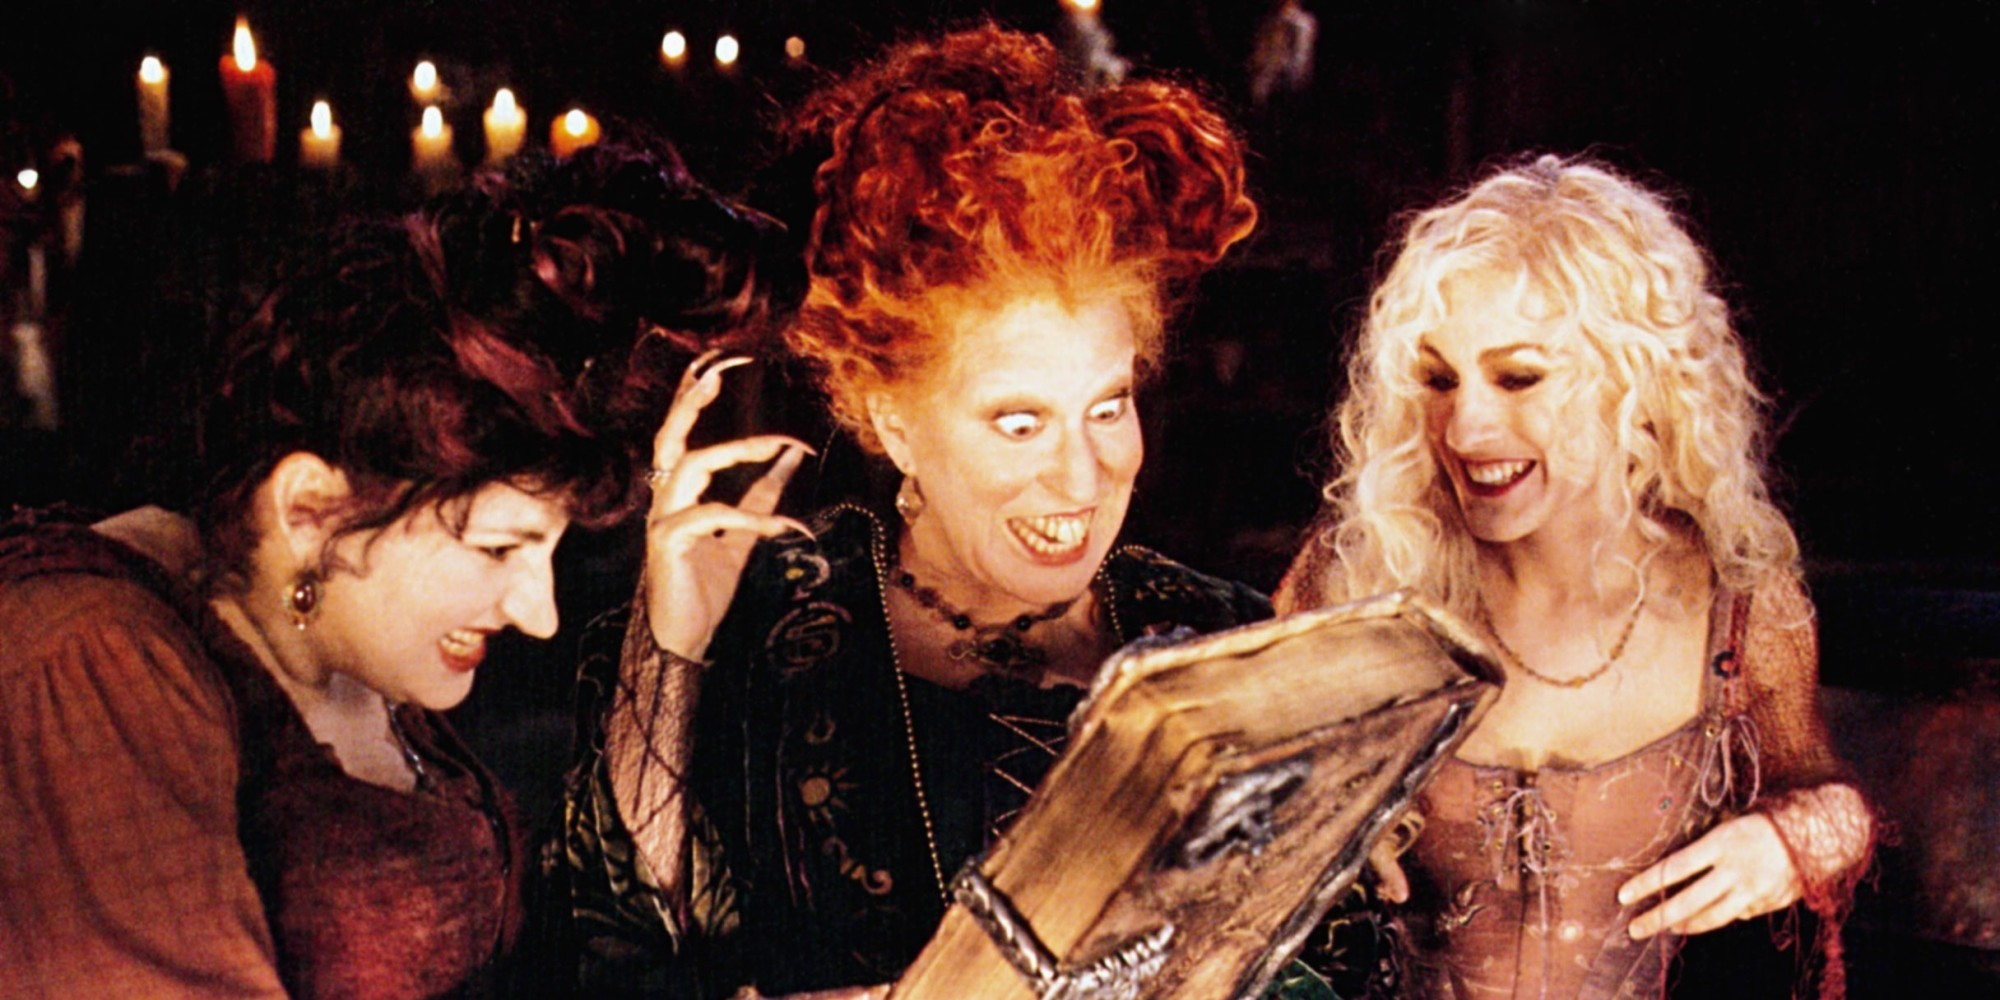 Hocus Pocus Review: Perfect Halloween fun for the entire family